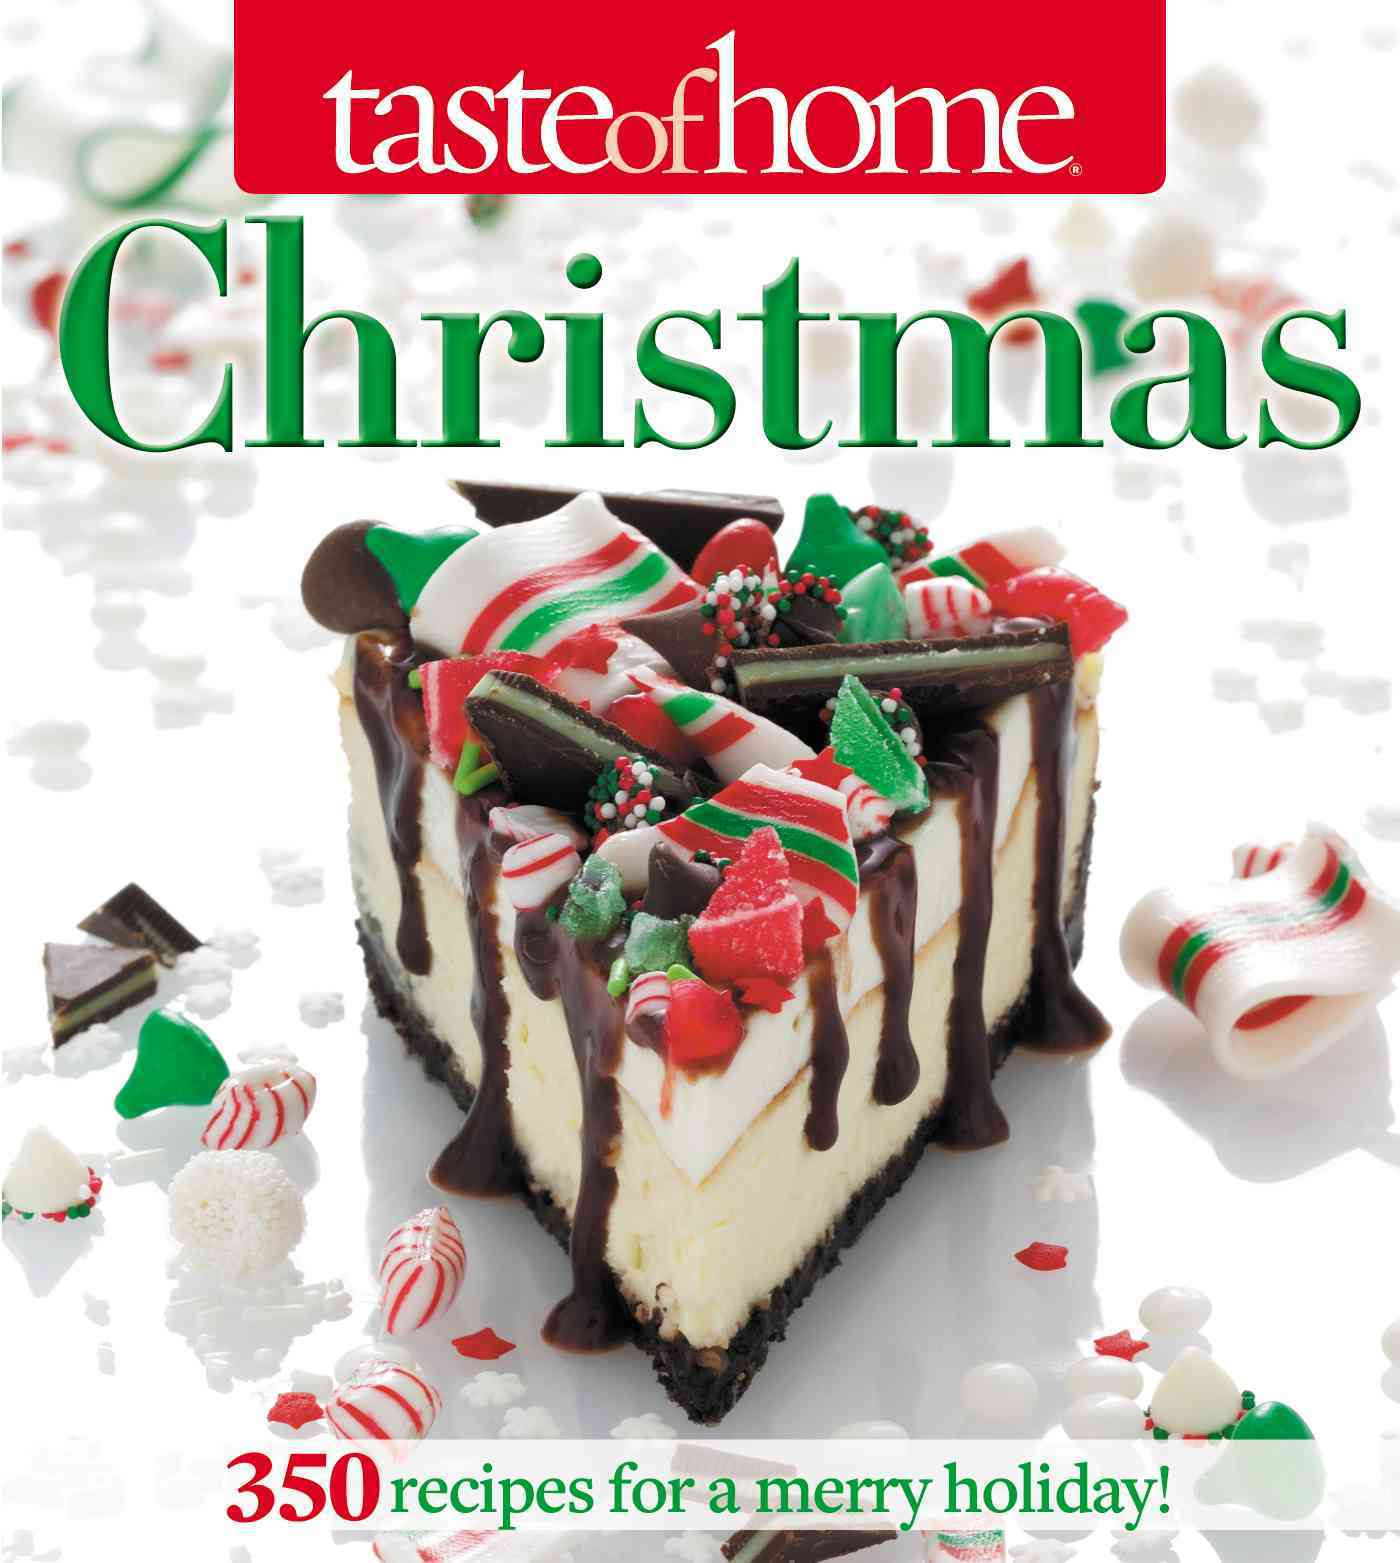 Taste of Home Christmas By Taste of Home (COR)